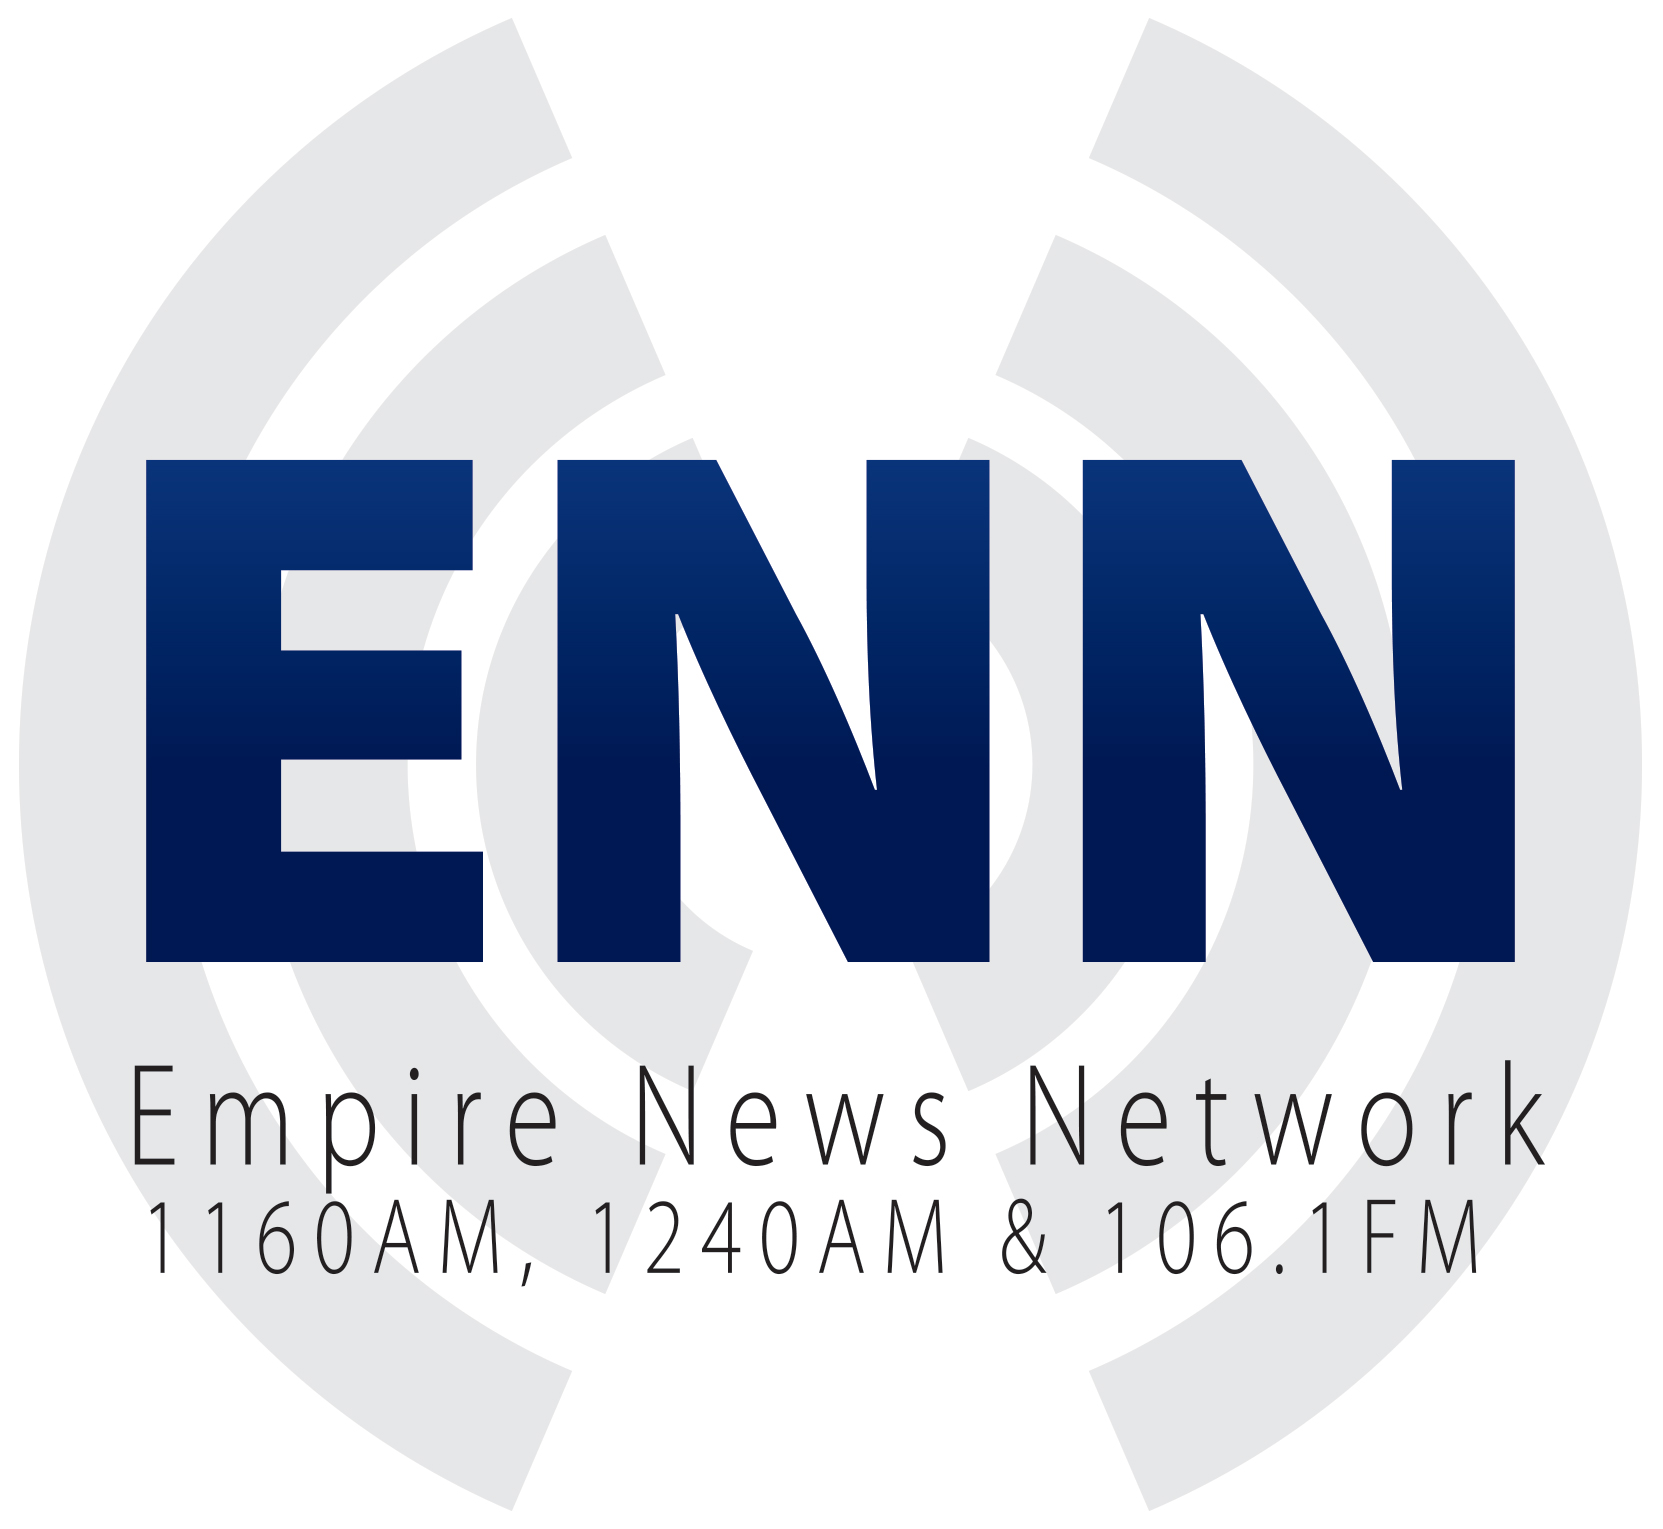 Empire News Network